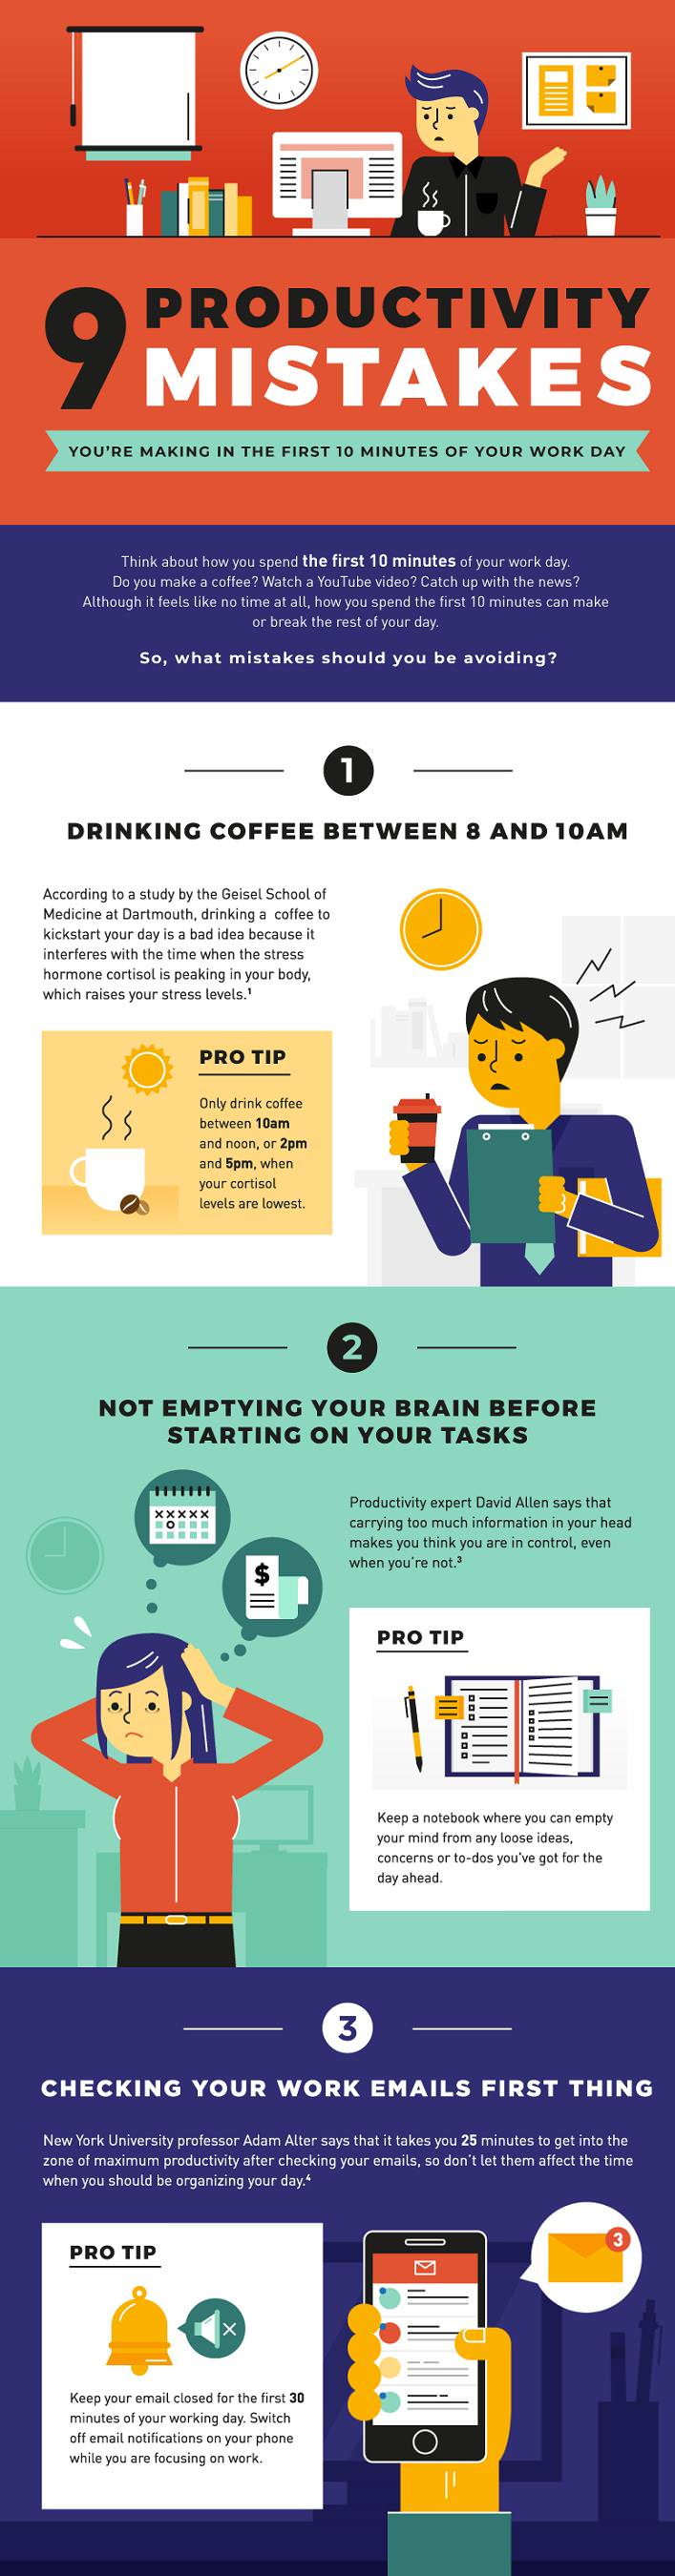 9 work productivity mistakes infographic